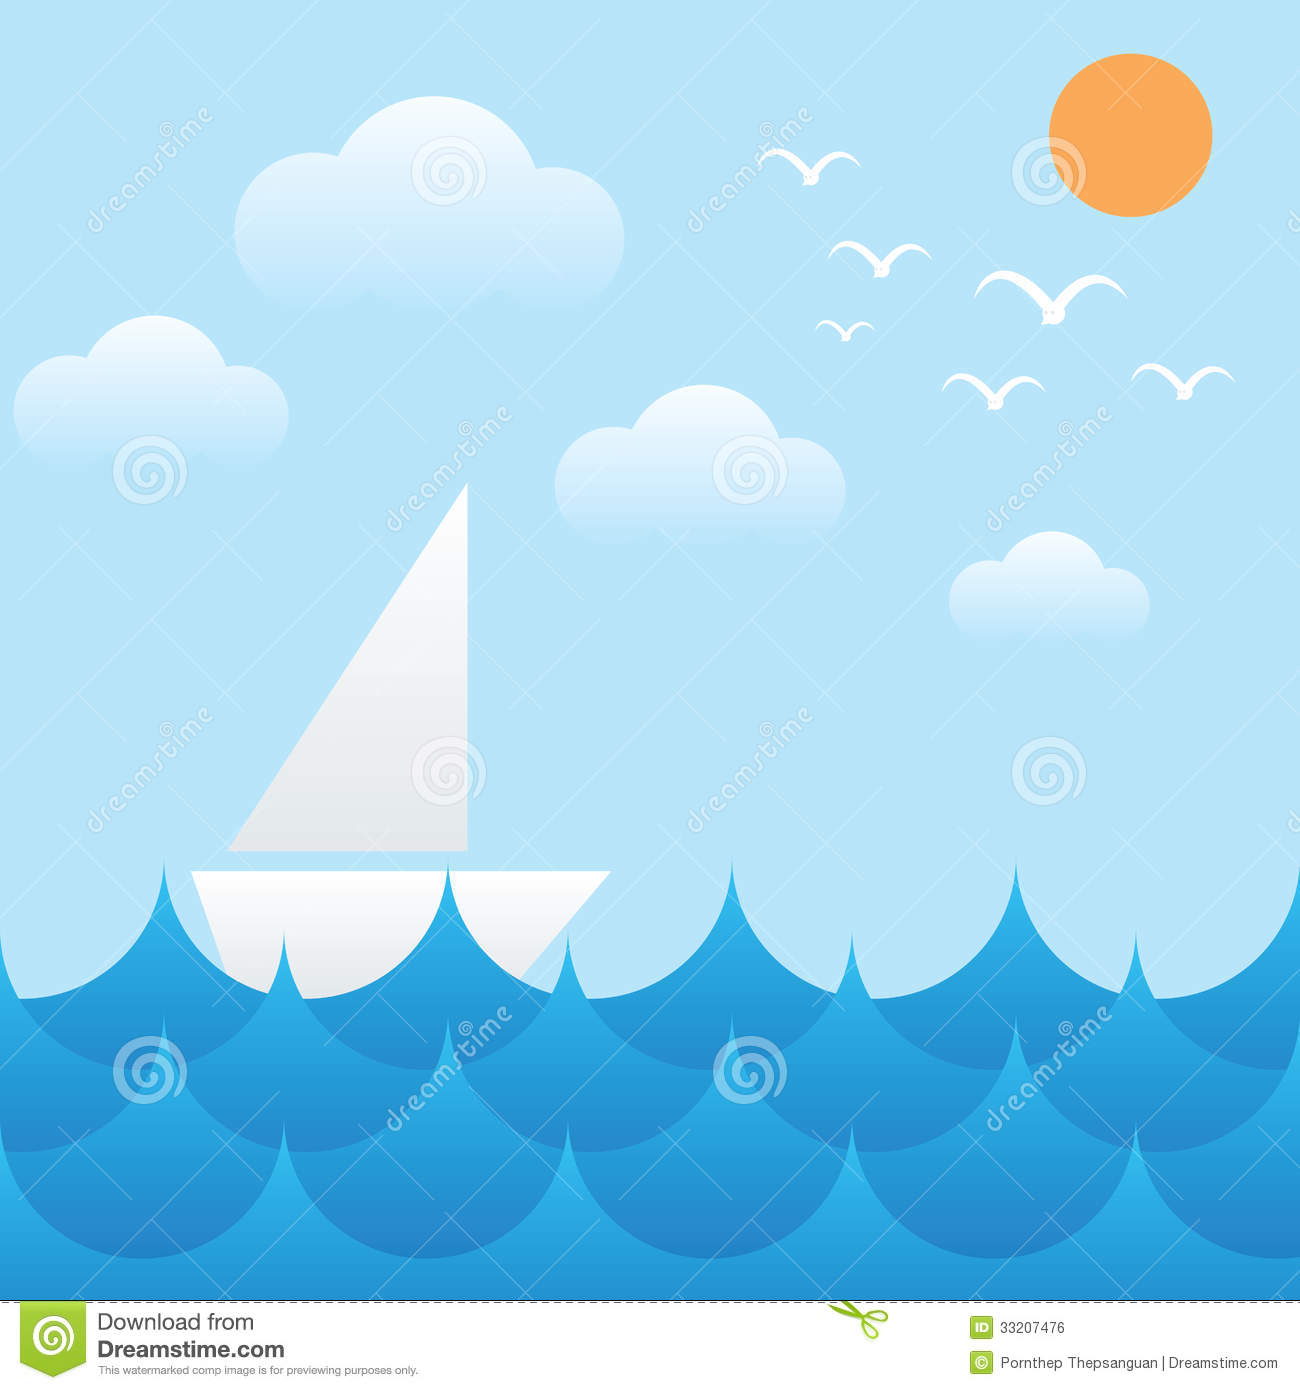 Decorative frames set download free vector art stock graphics - Boat At Sea Waves Sun Sky And Cloud Royalty Free Stock